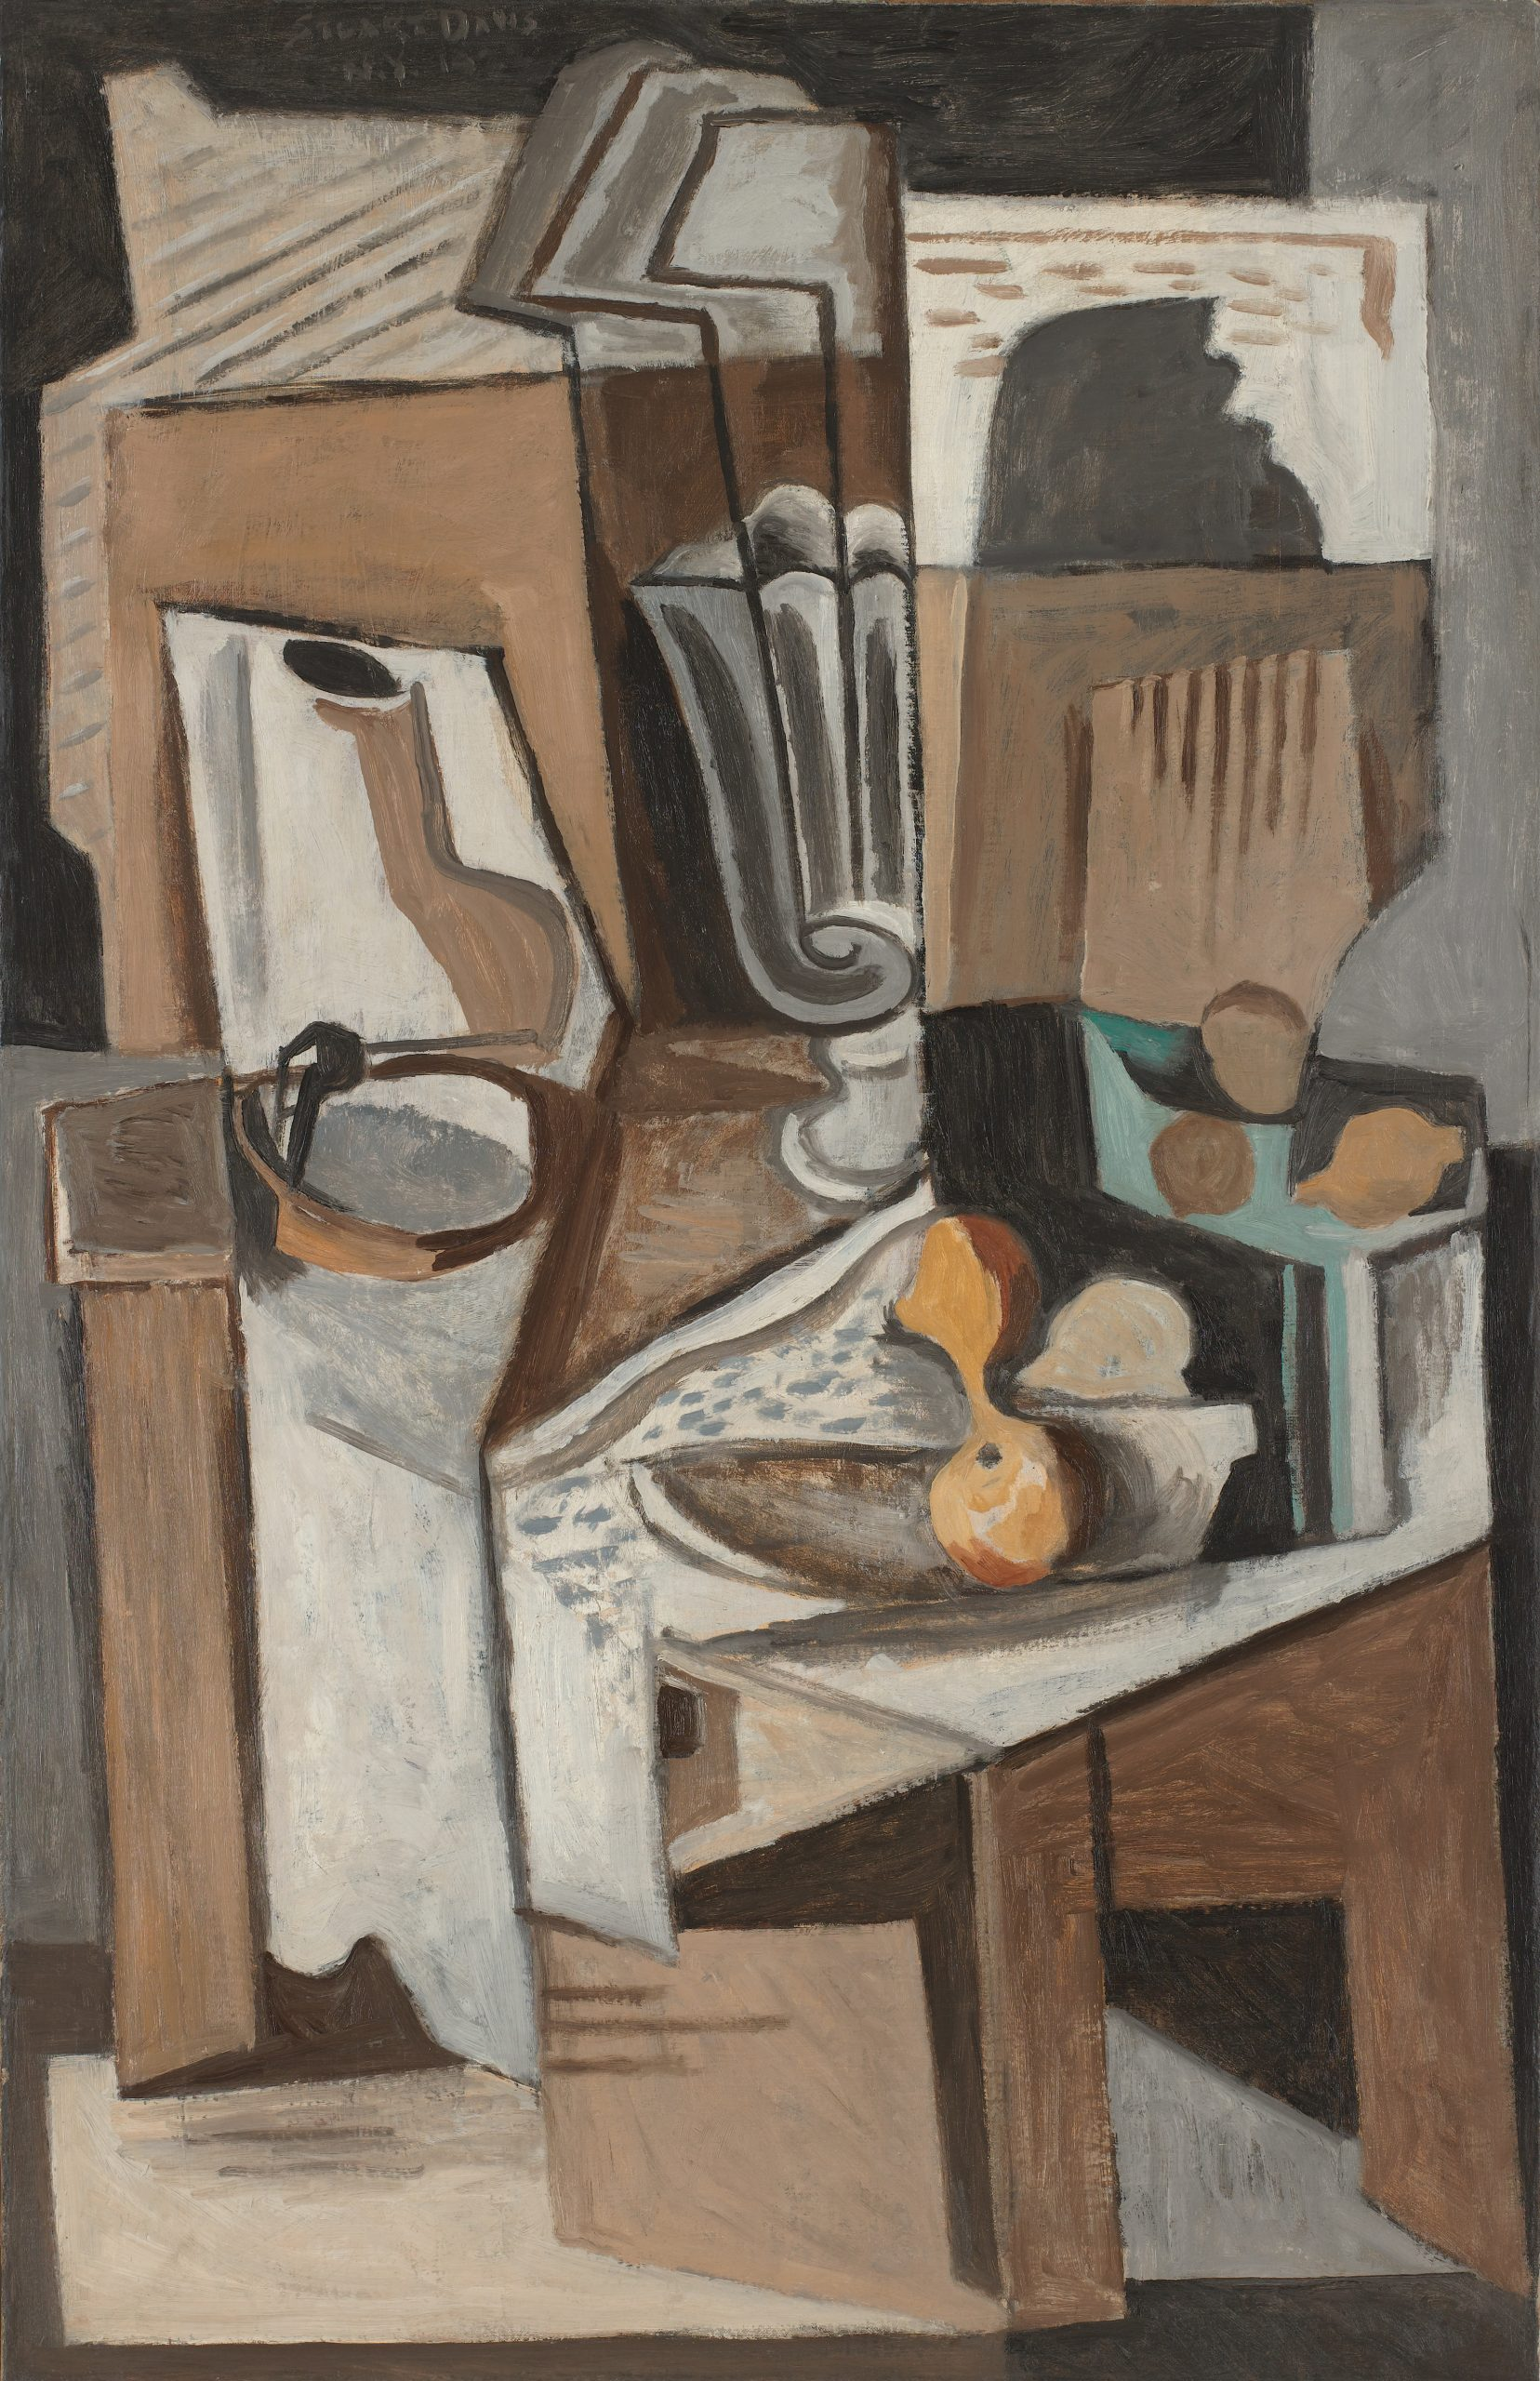 A cubist still life painted predominately in shades of brown featuring fruit, a vase, a pipe and a book arranged on table.